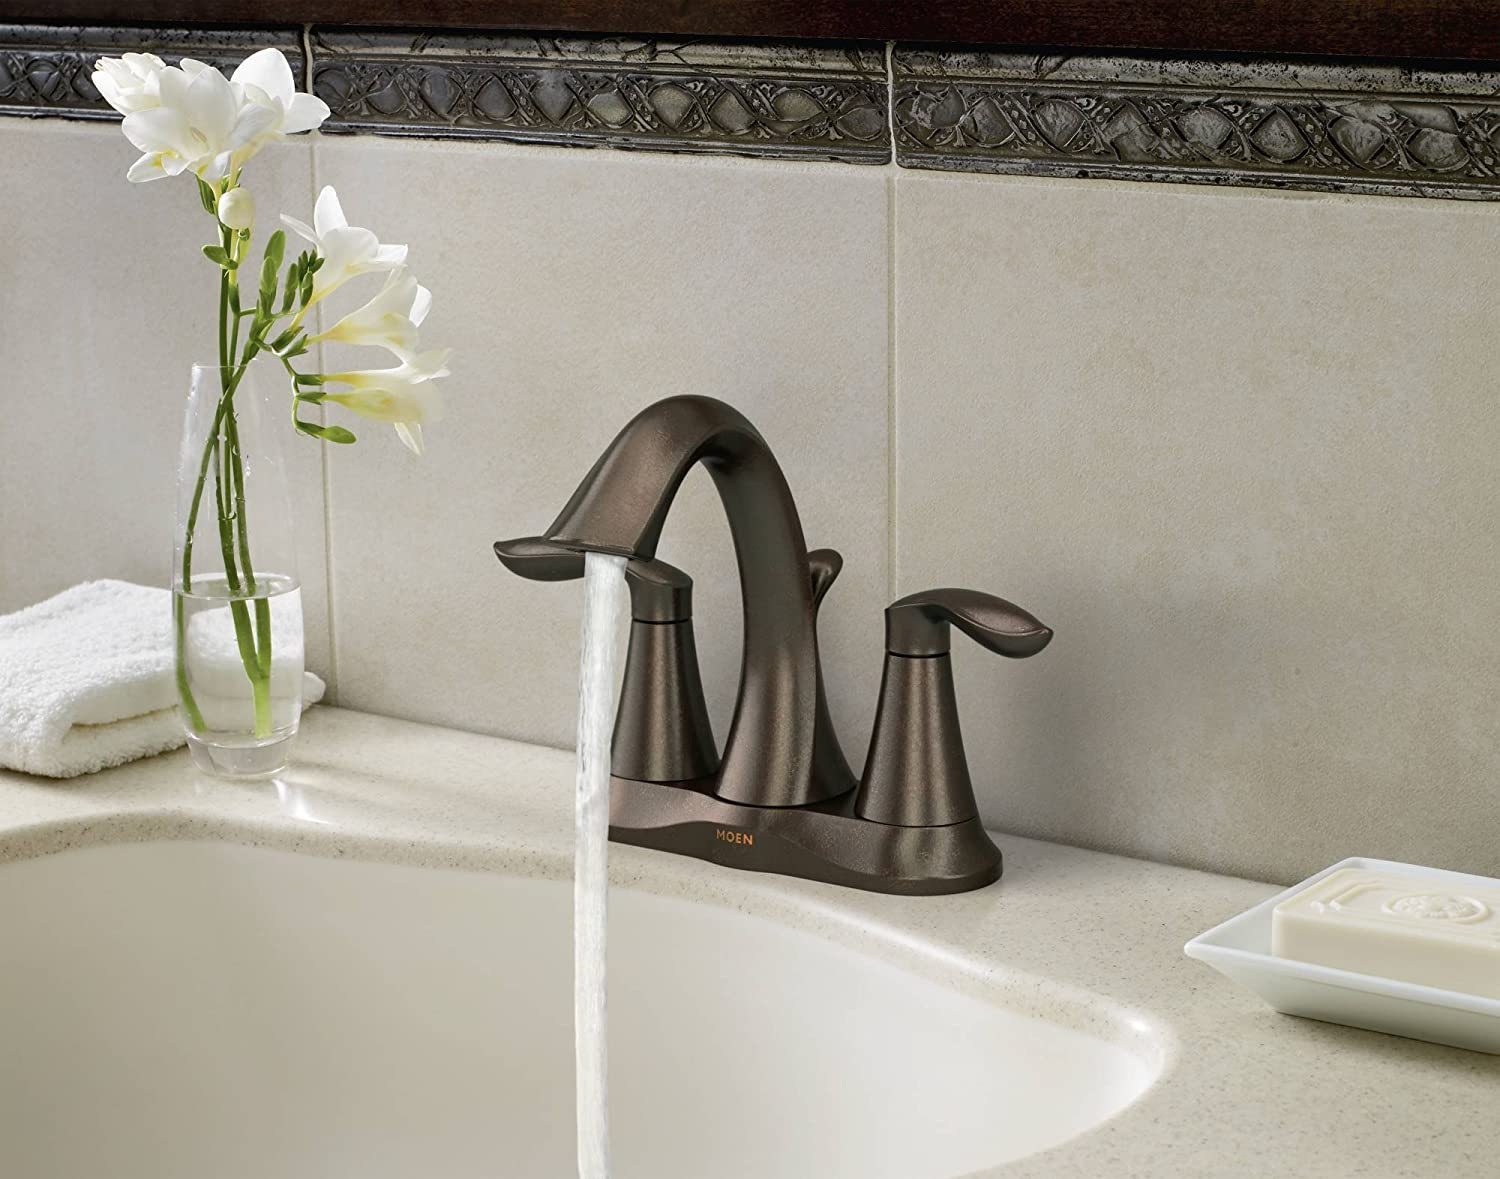 Moen 6410ORB Eva Two-Handle Centerset Lavatory Faucet with Drain ...